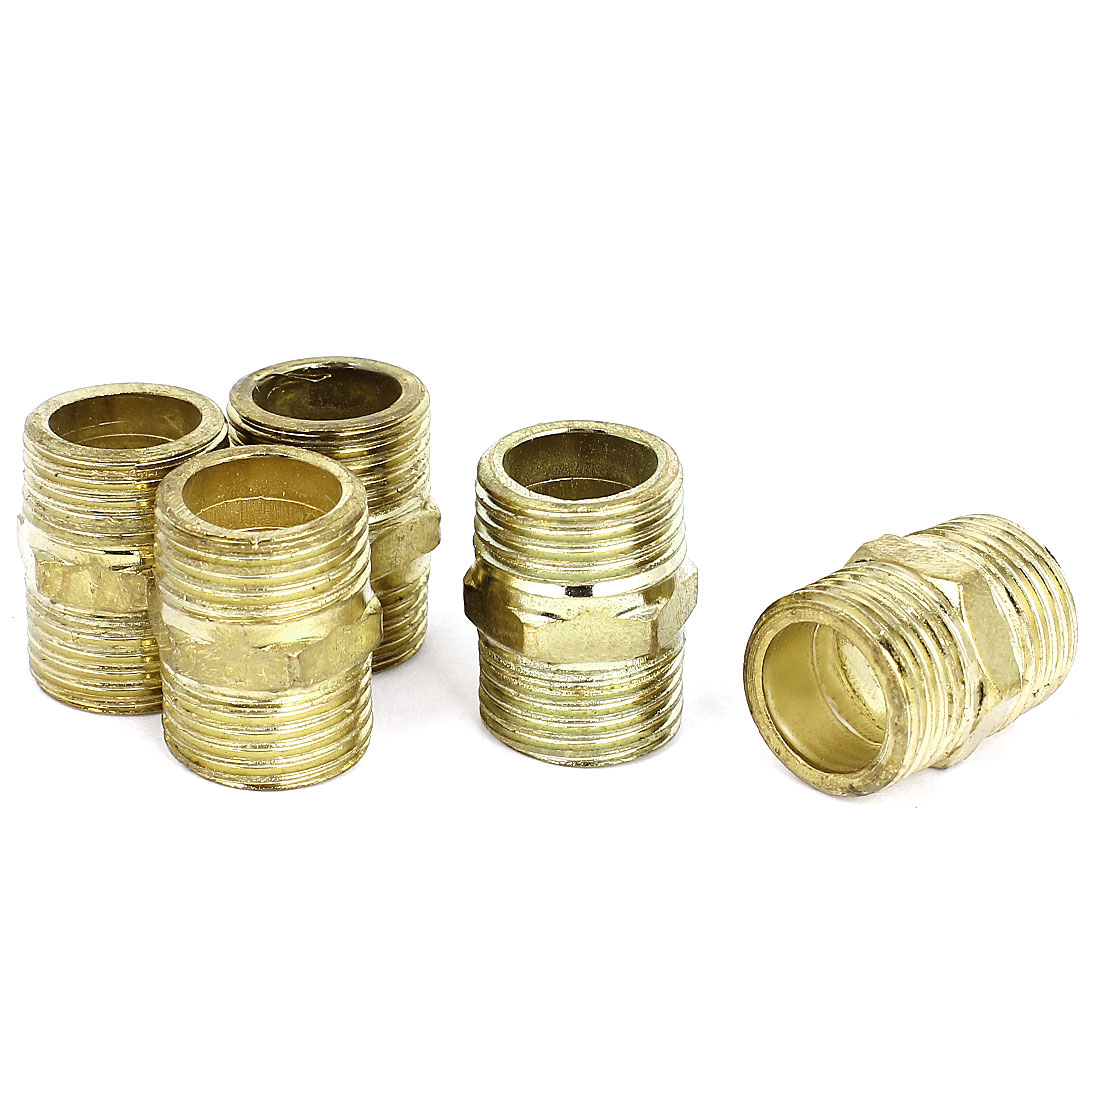 5Pcs Gold Tone Brass 1/2BSP to 1/2BSP Male Thread Hex Nipple Connector Fitting